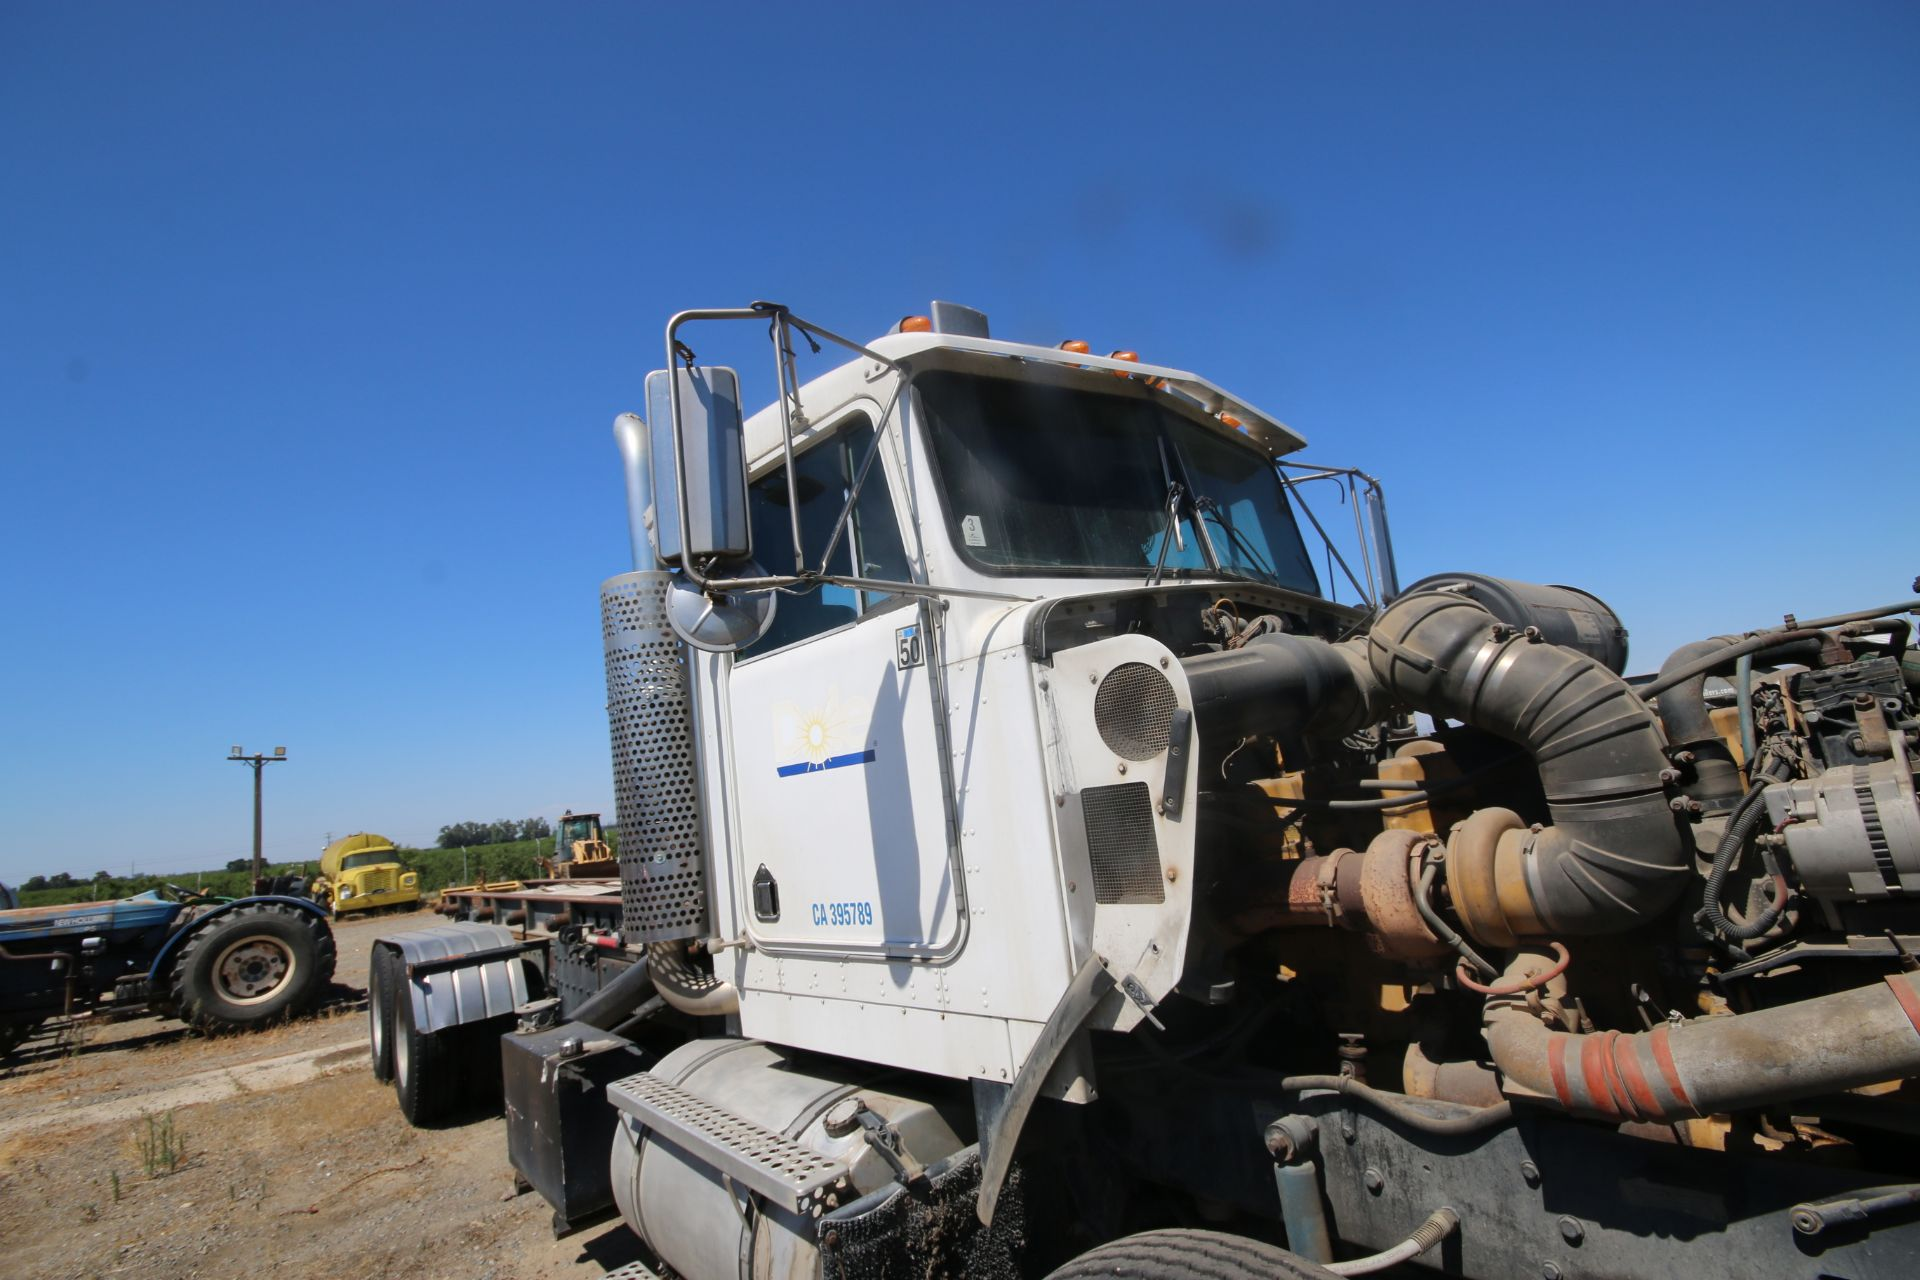 1996 Kenworth 3-Axle Roll-Off Straight Truck, VIN #: 1XKDDB9XOTS687107, with 24,722 Miles, License - Image 24 of 30